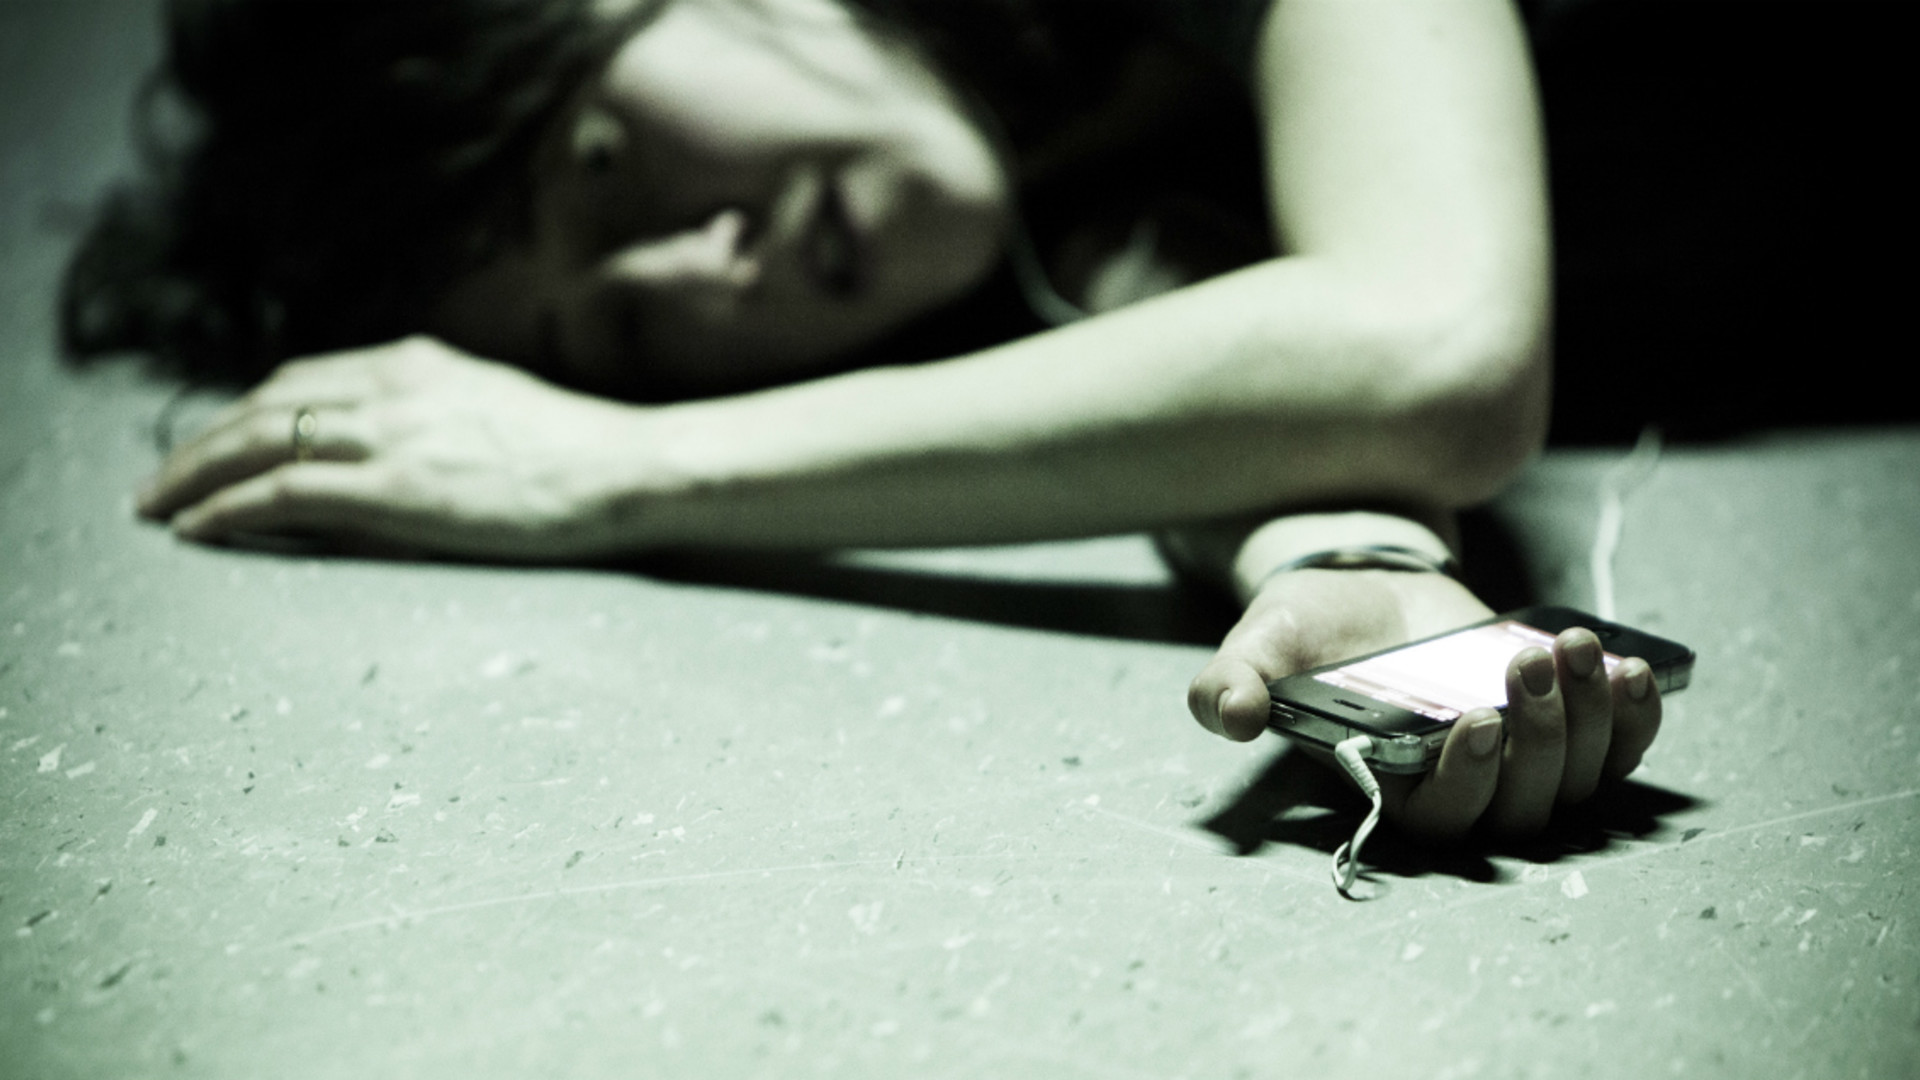 A performer lies on the ground, with her arm outstretched holding her iPhone.